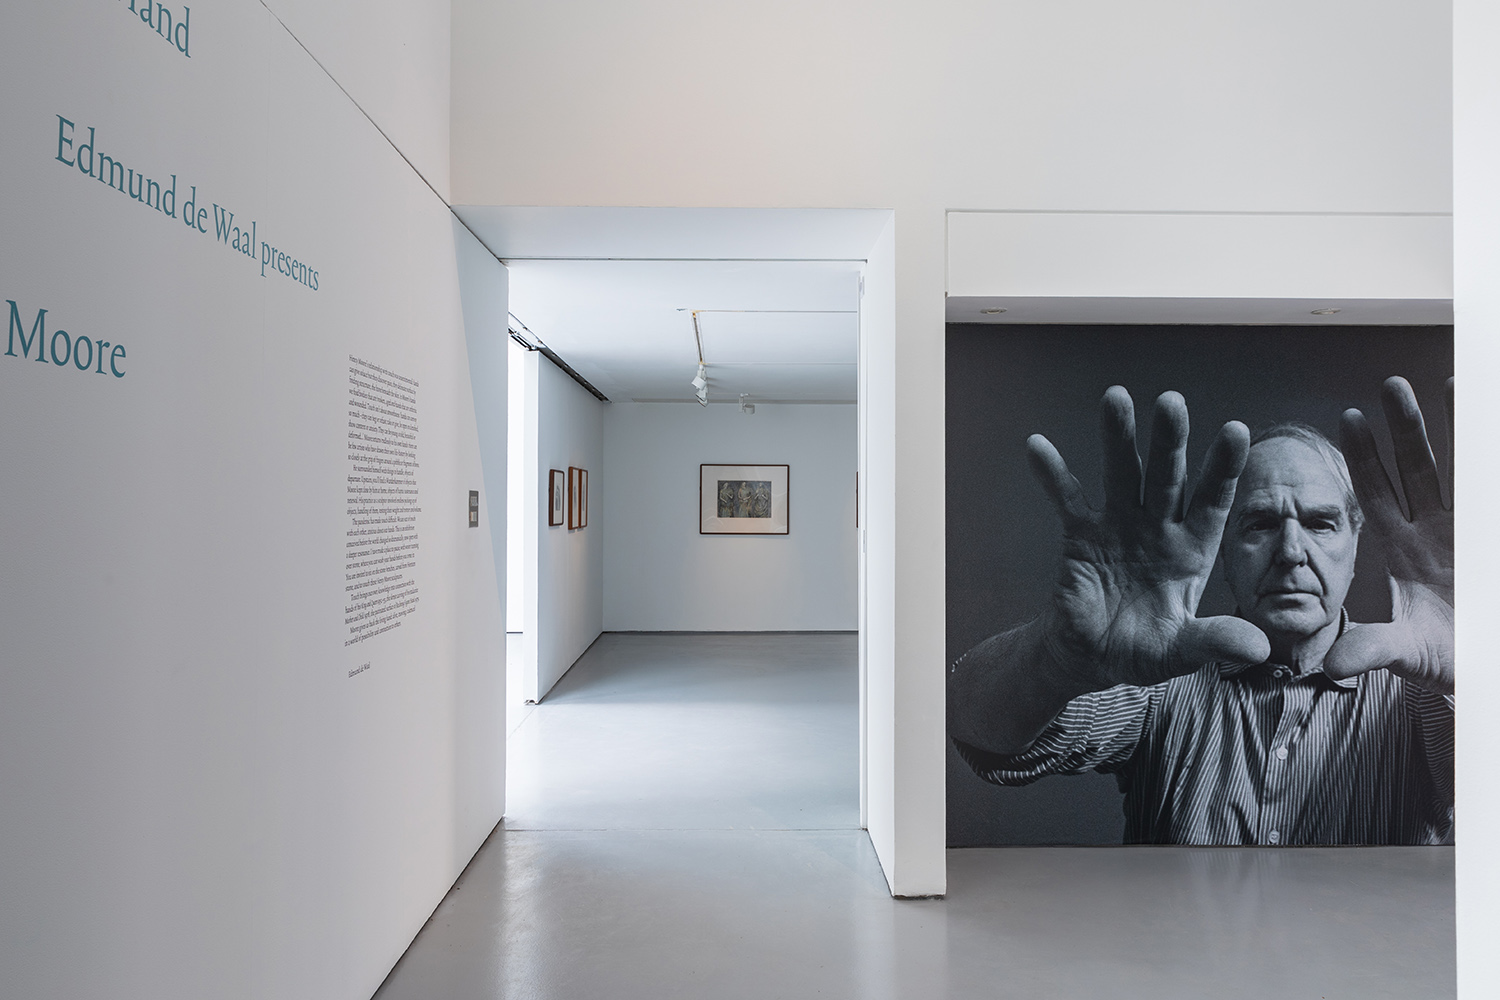 An installation view of the entrance to the 'This Living Hand' gallery, showing a black and white photograph of Henry Moore on one wall and the title text on an adjacent wall.